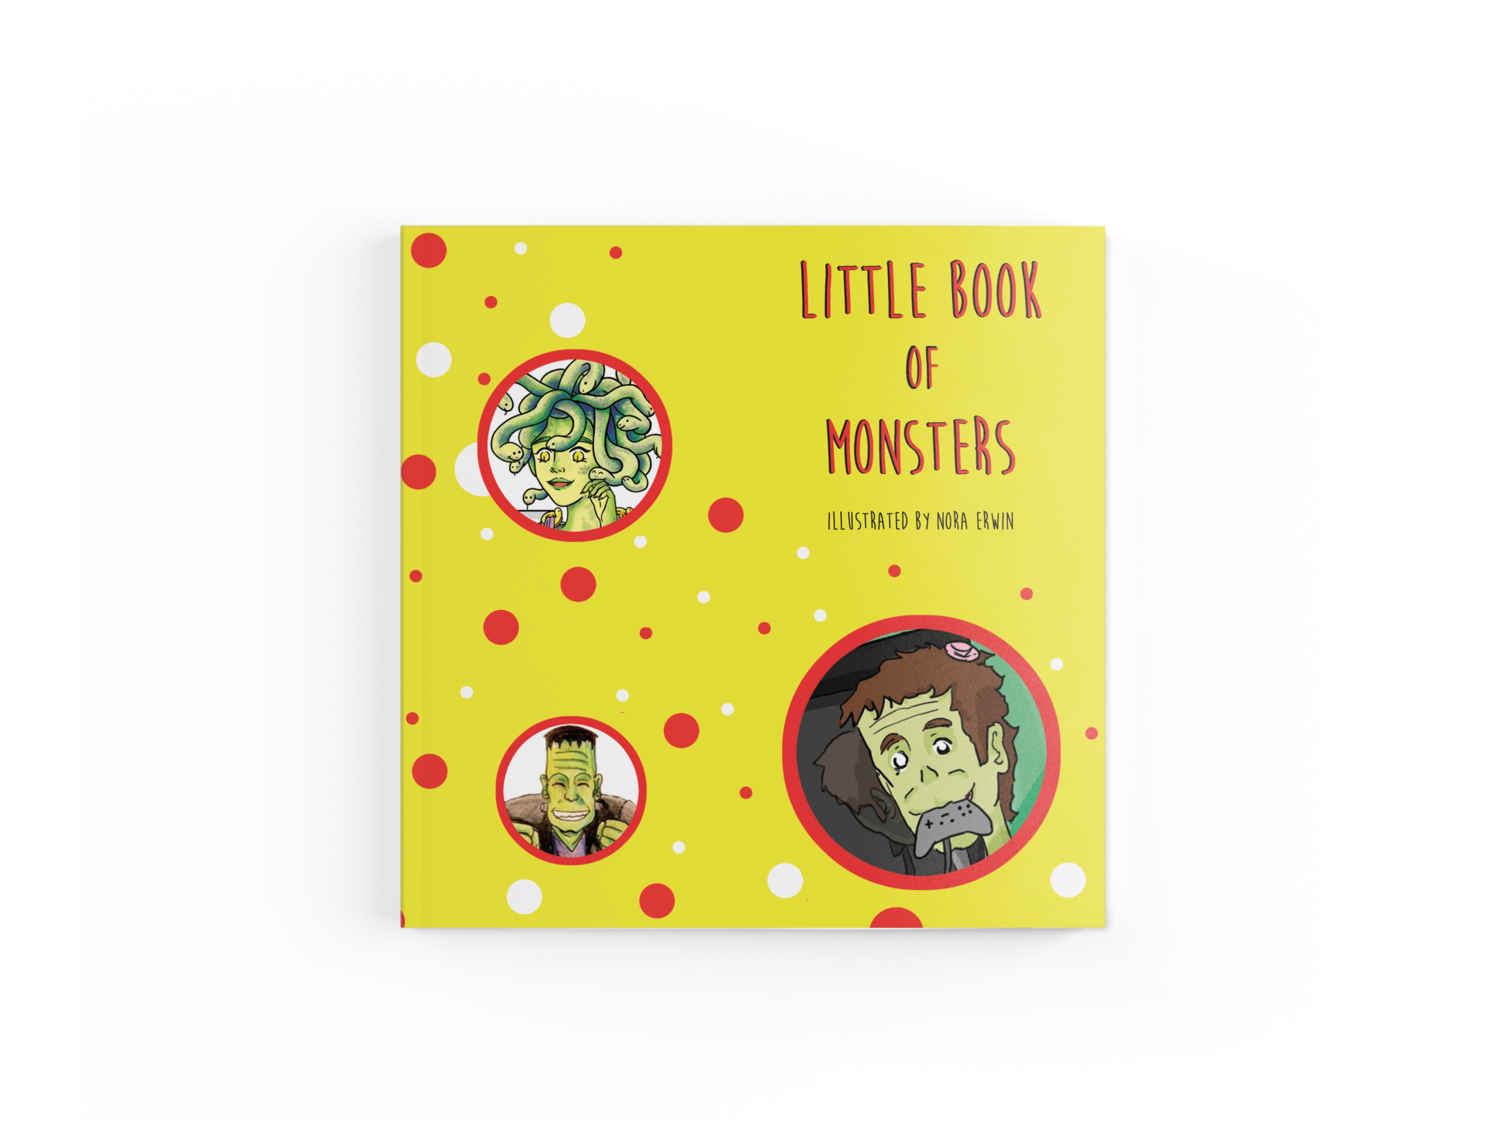 Little Book of Monsters